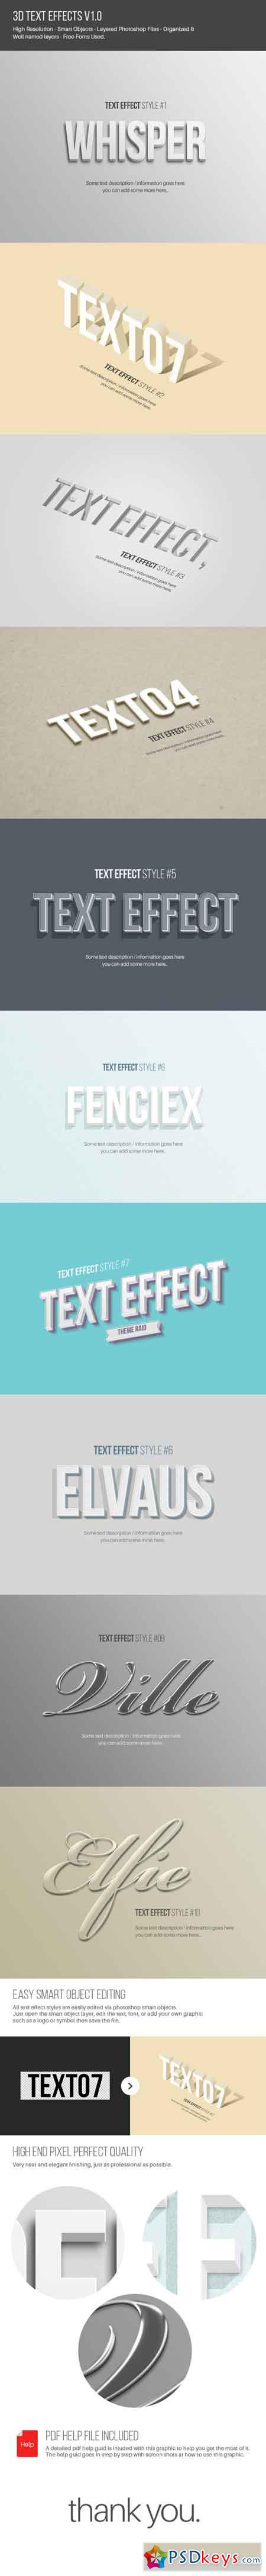 Text Effects V1.0 10530426